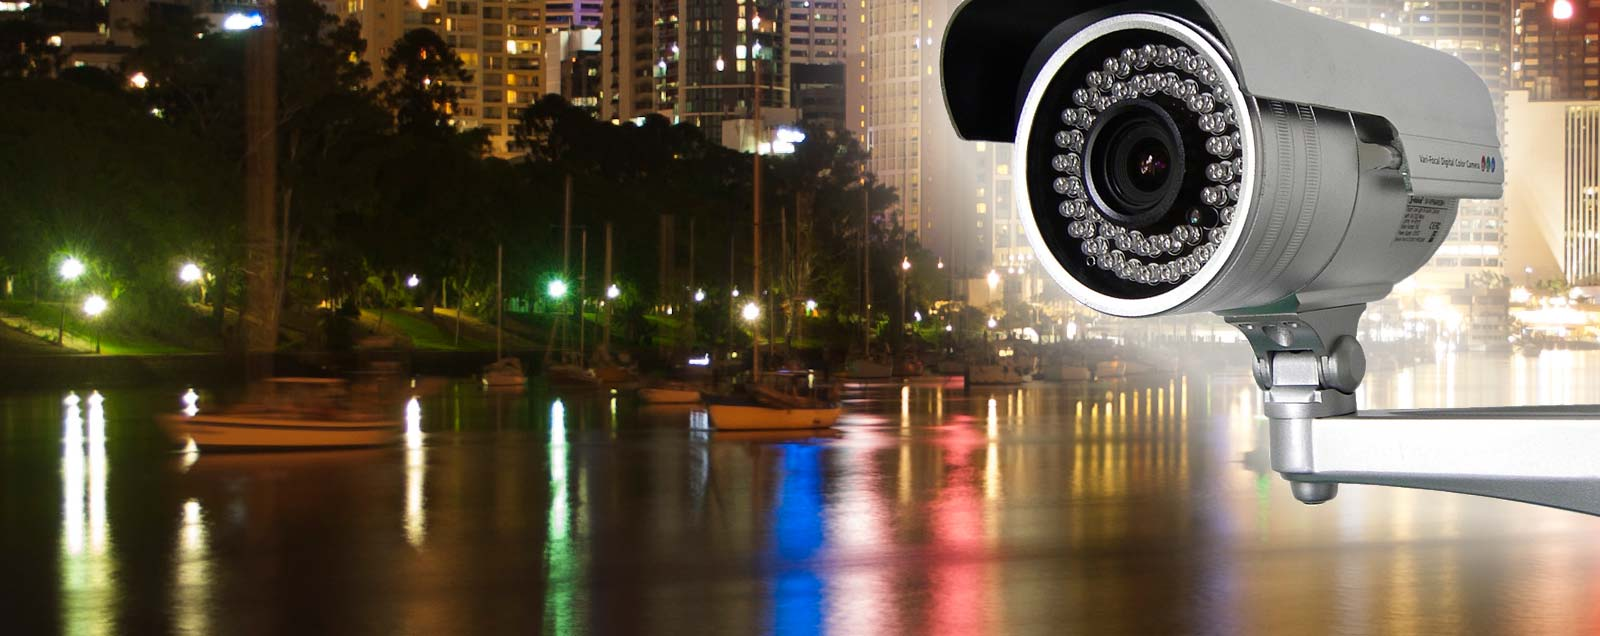 Superior HD security systems